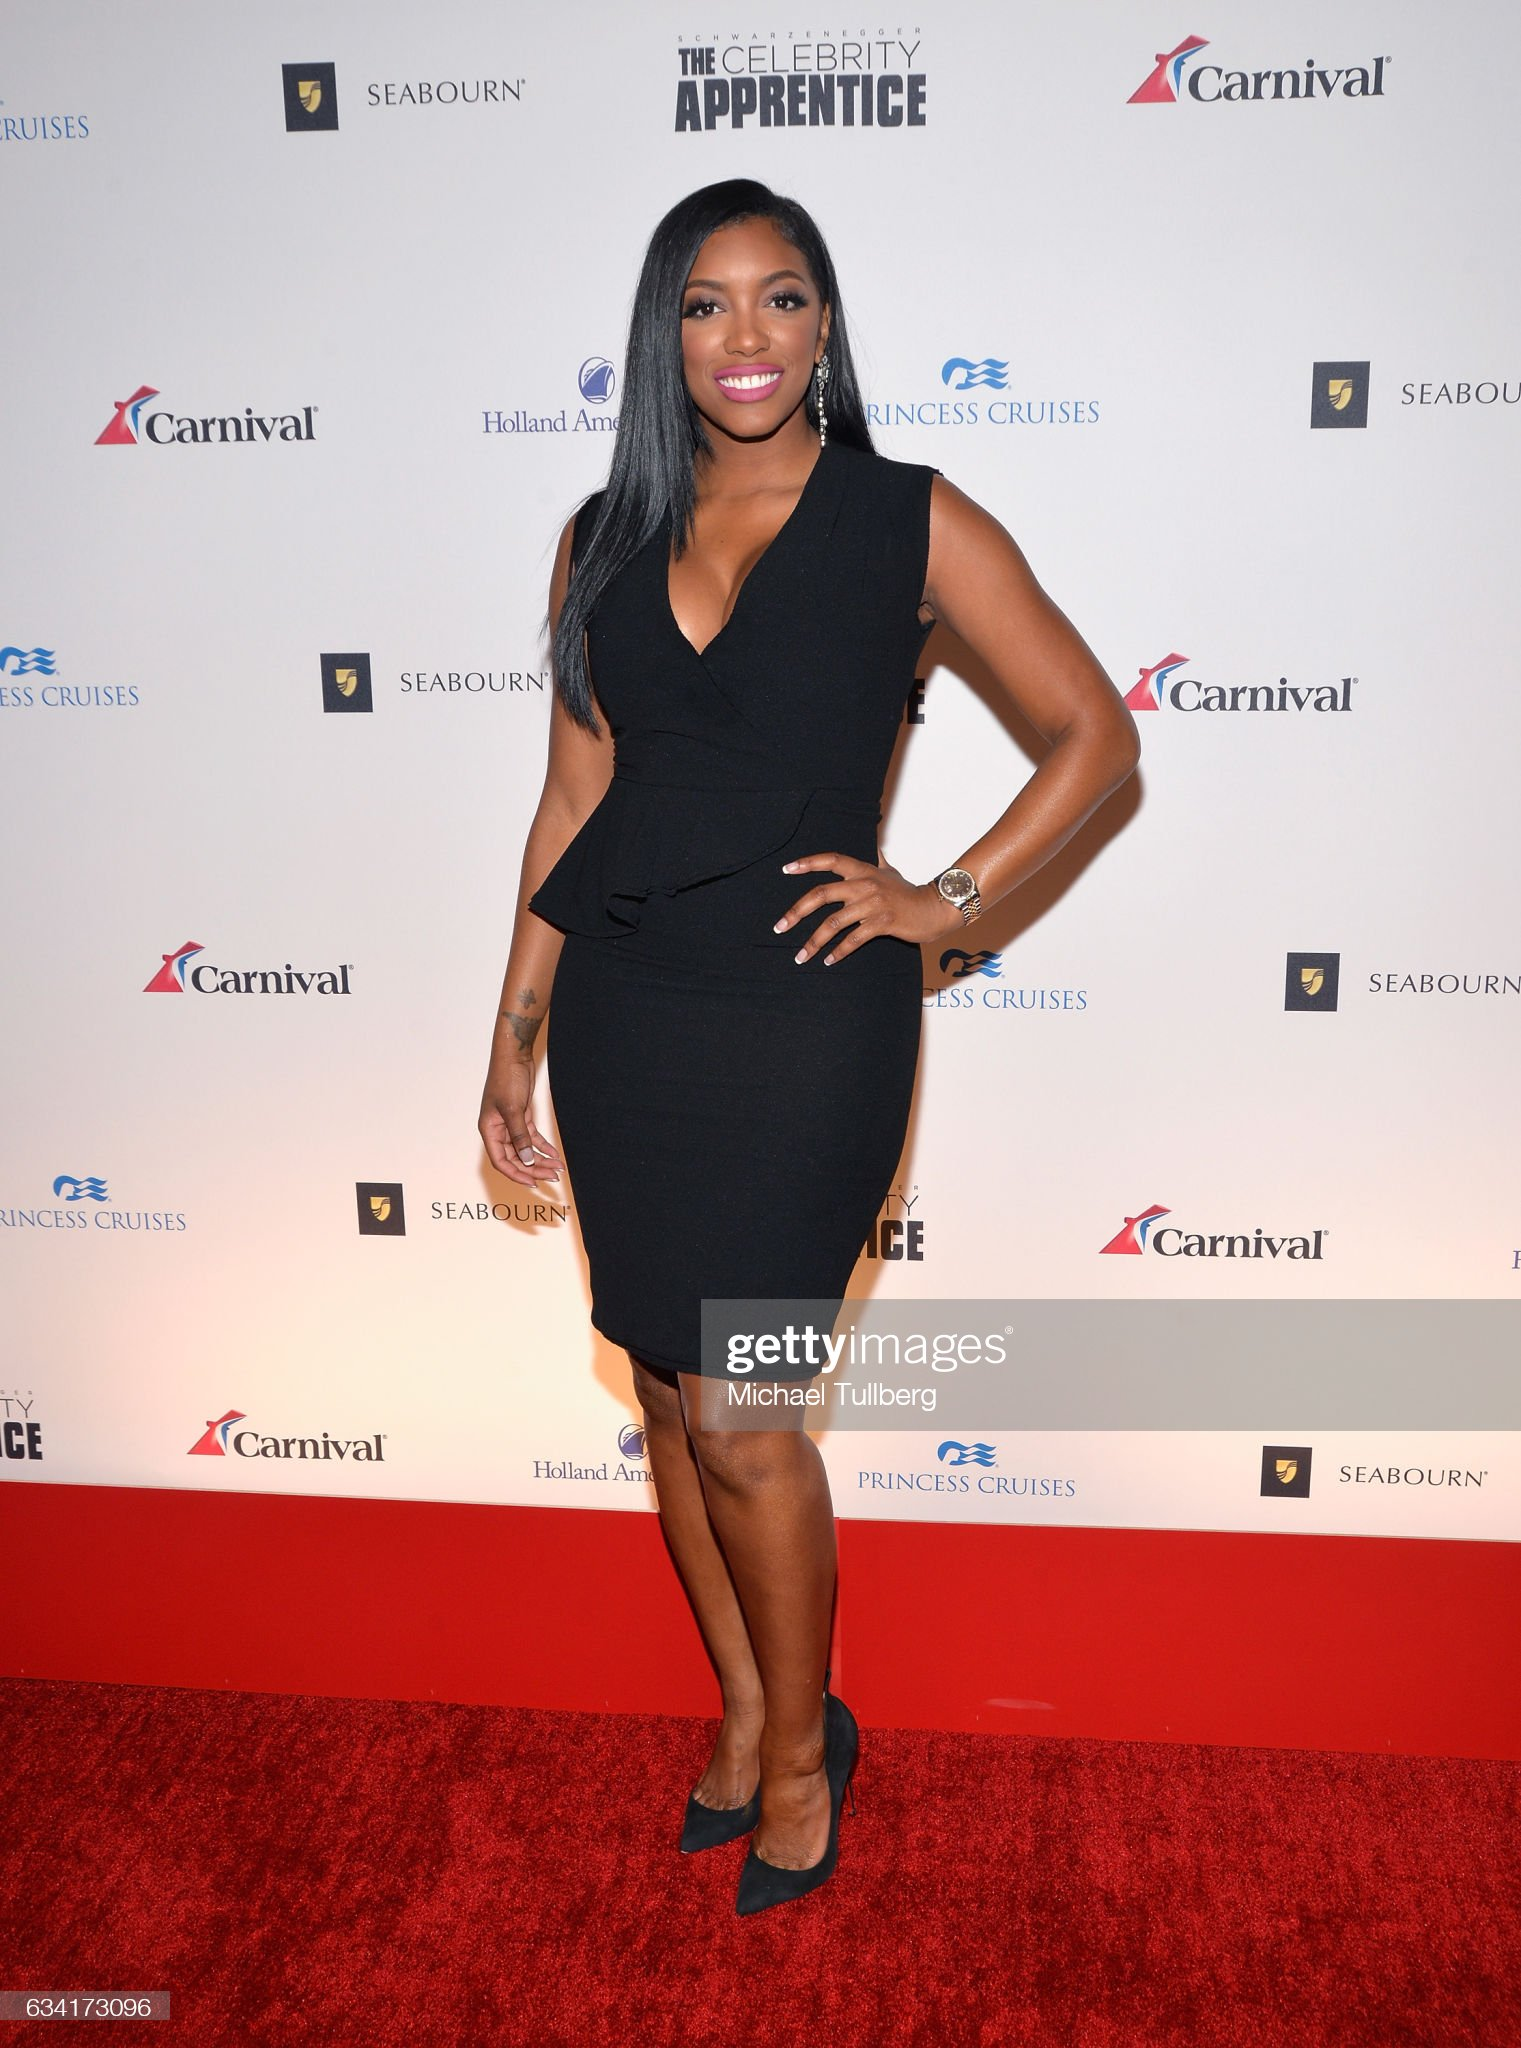 ¿Cuánto mide Porsha Williams? - Real height Personality-porsha-williams-attends-the-red-carpet-event-for-nbcs-picture-id634173096?s=2048x2048